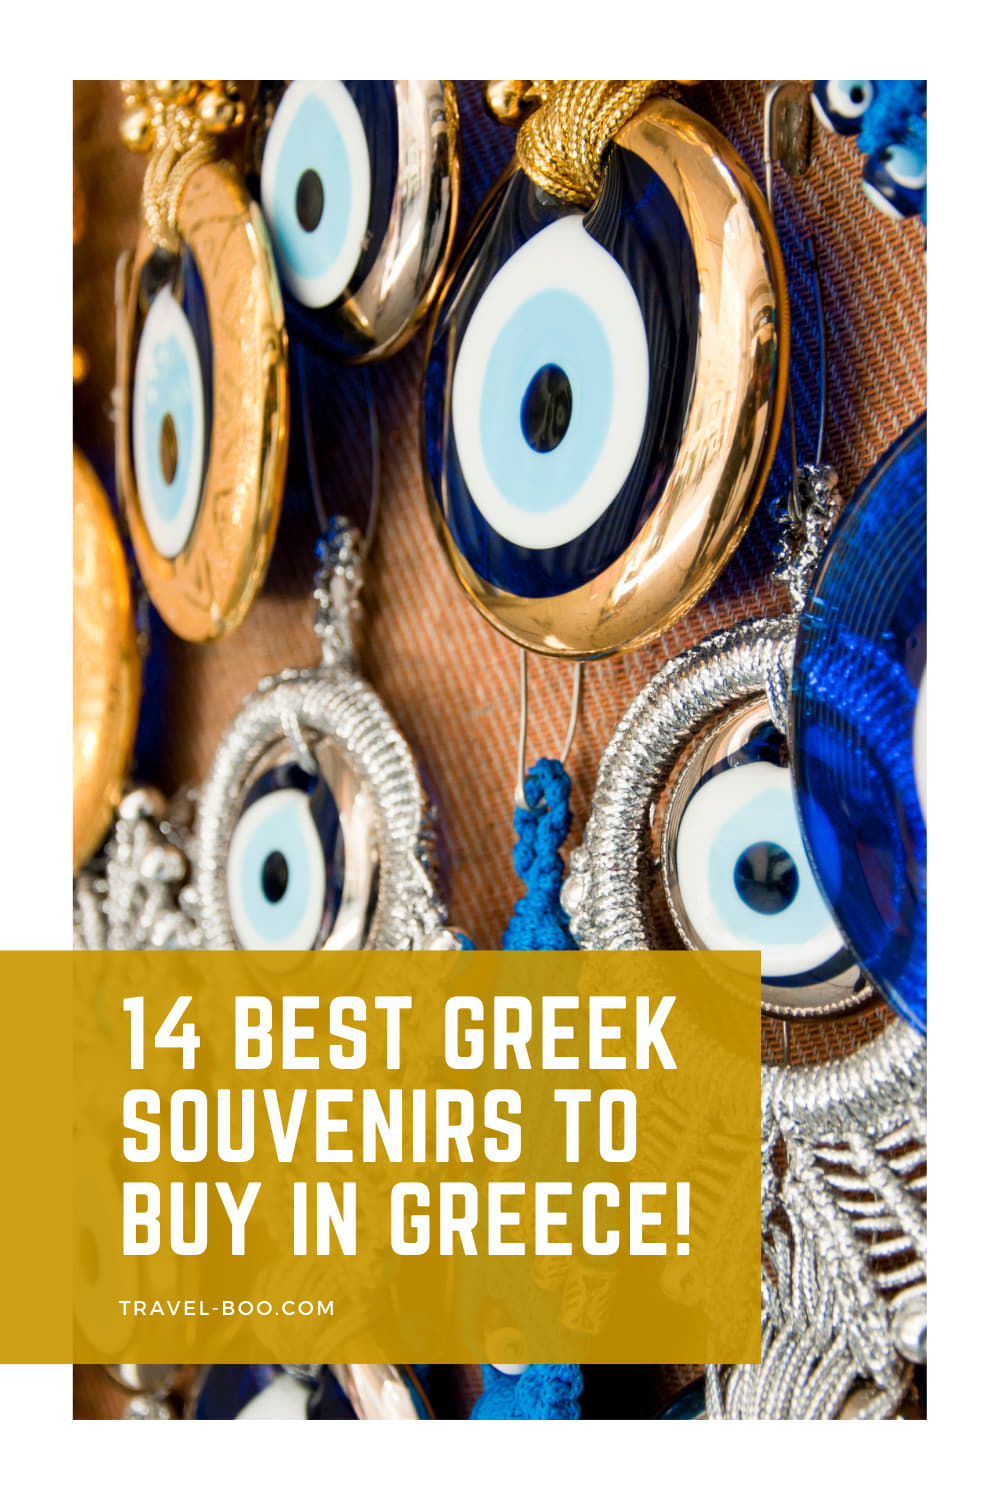 14 Best Souvenirs from Greece - Buy beautiful Greece Souvenirs! Greece Travel, Greece Travel Tips, Greece Travel Itinerary, What to buy in Greece, Greece Souvenirs.